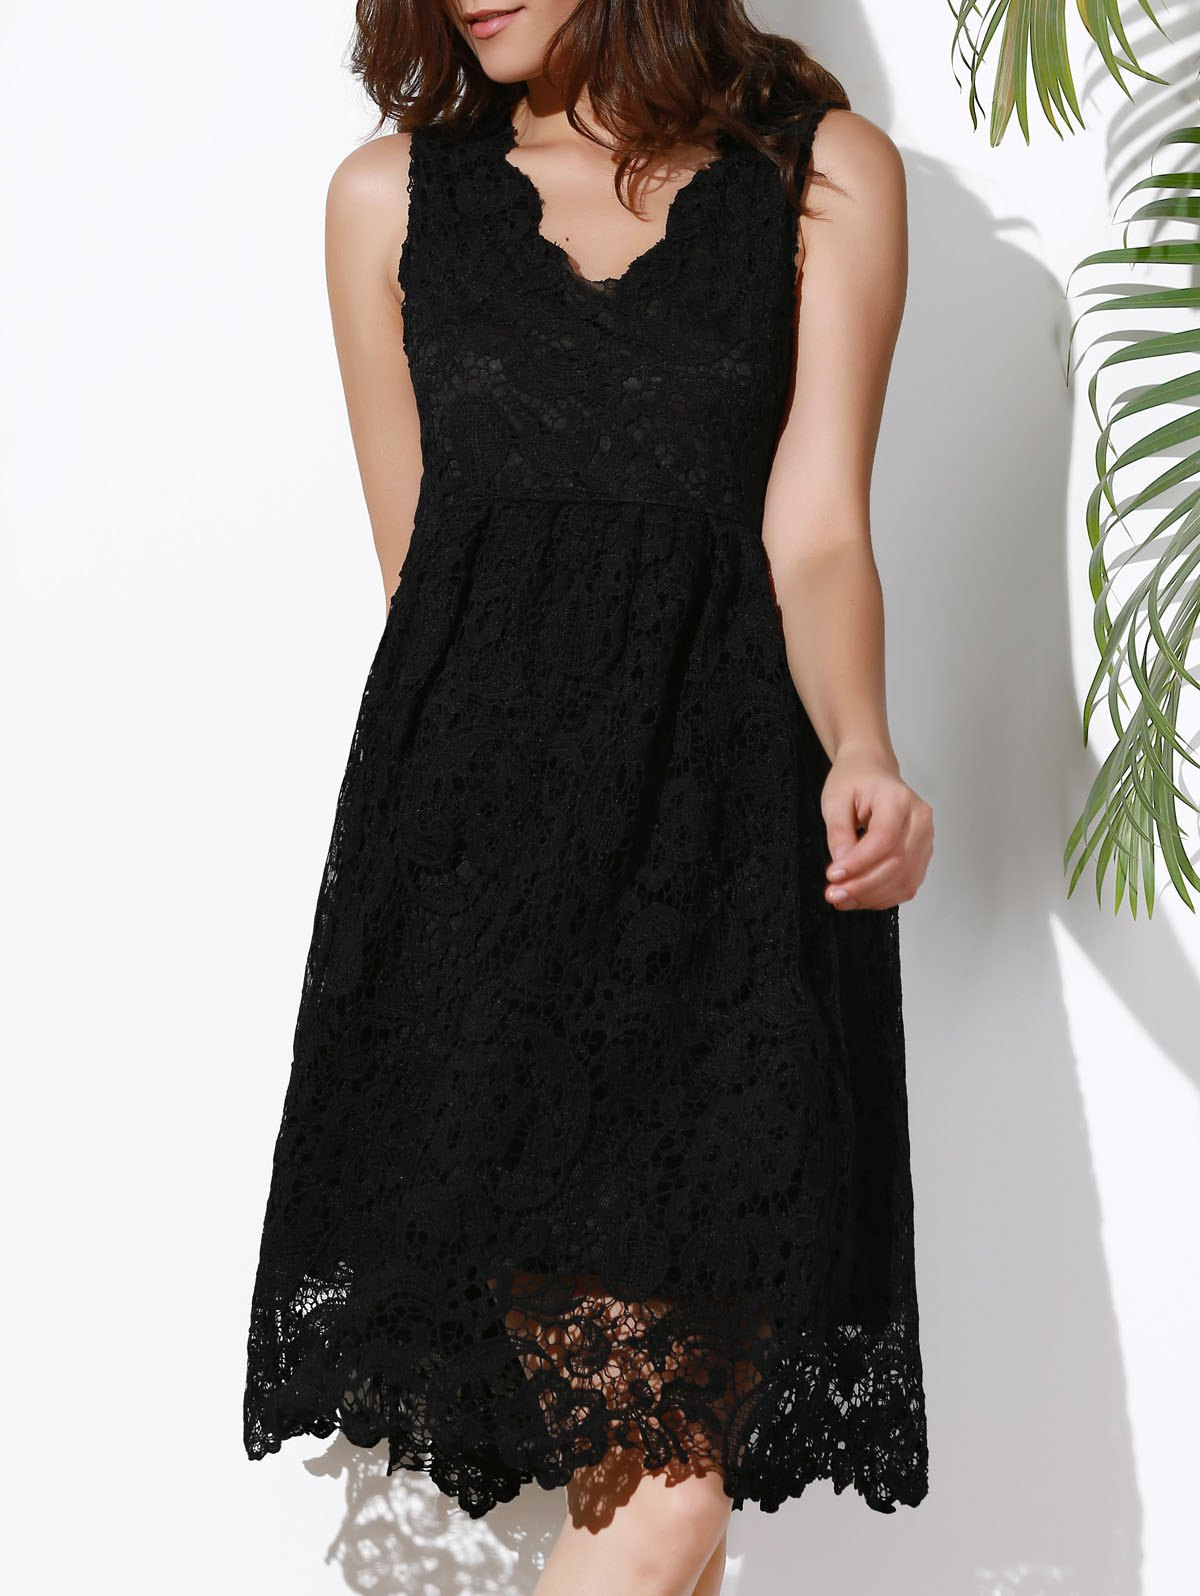 Stylish Sleeveless Plunging Neck Solid Color Lace Women's Dress - BLACK XL